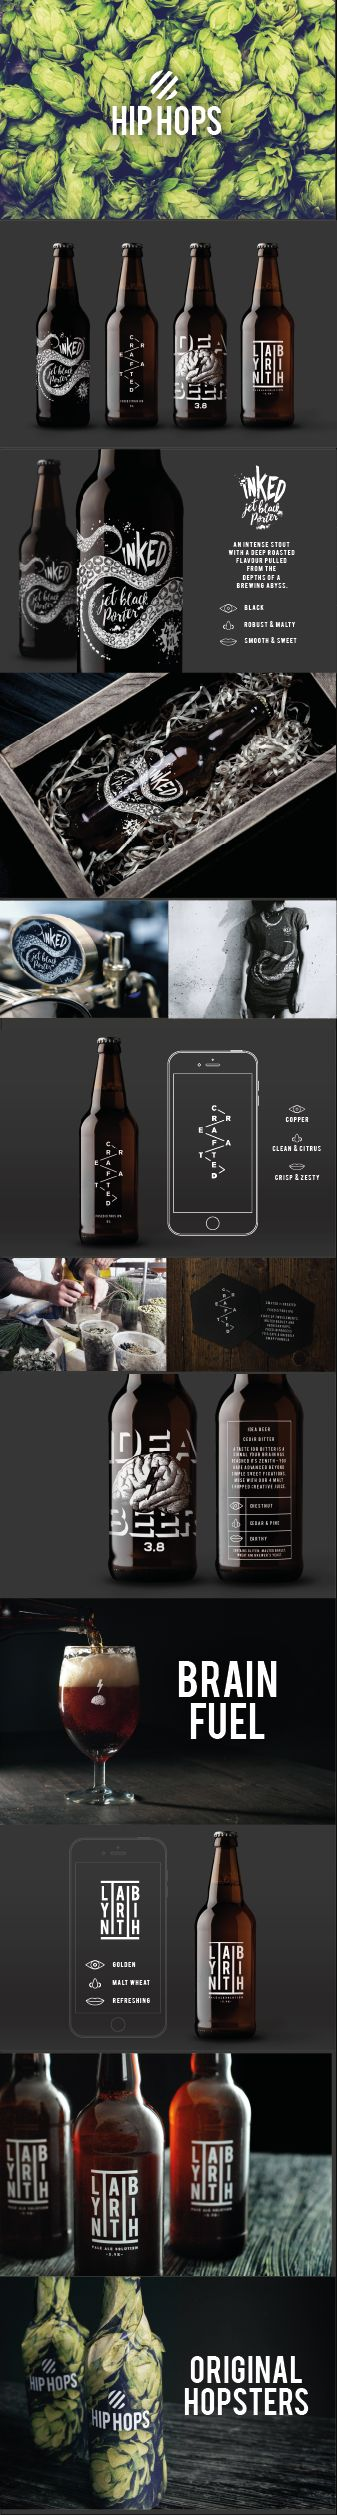 Hip Hops Craft Beer #Branding read the full story at eatwithouyeyes.co.uk #craftbeer #innovative #hiphops #packaging